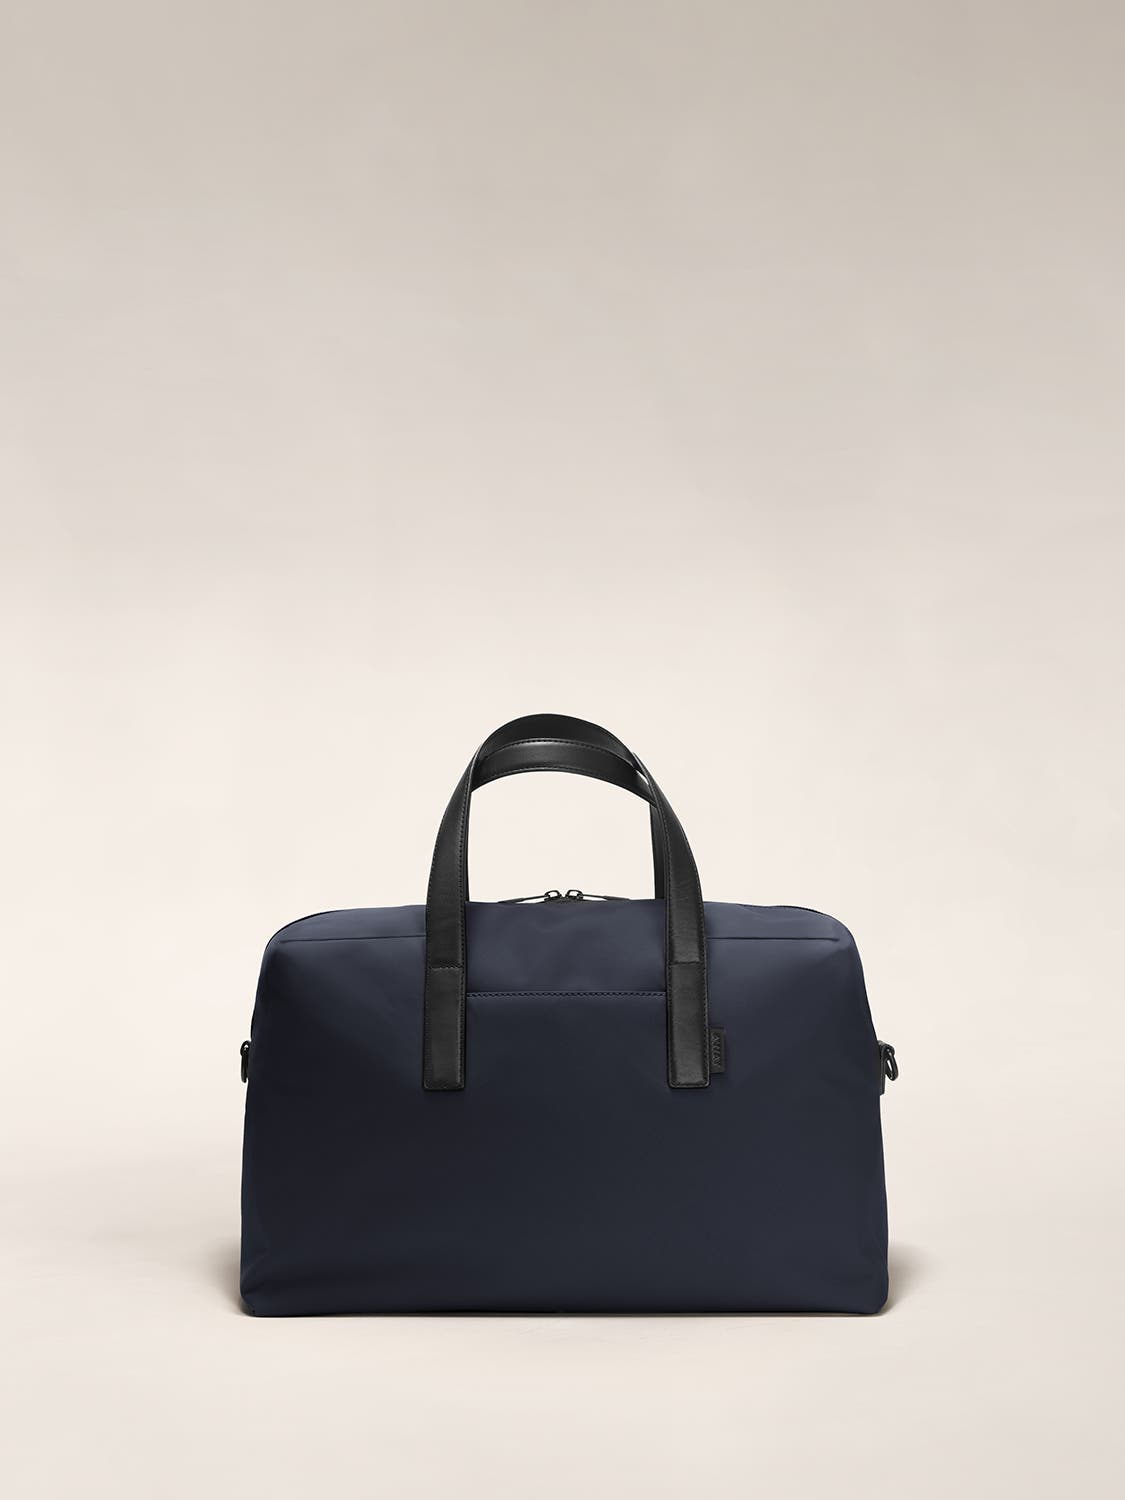 Front of a navy duffle bag with raised straps.